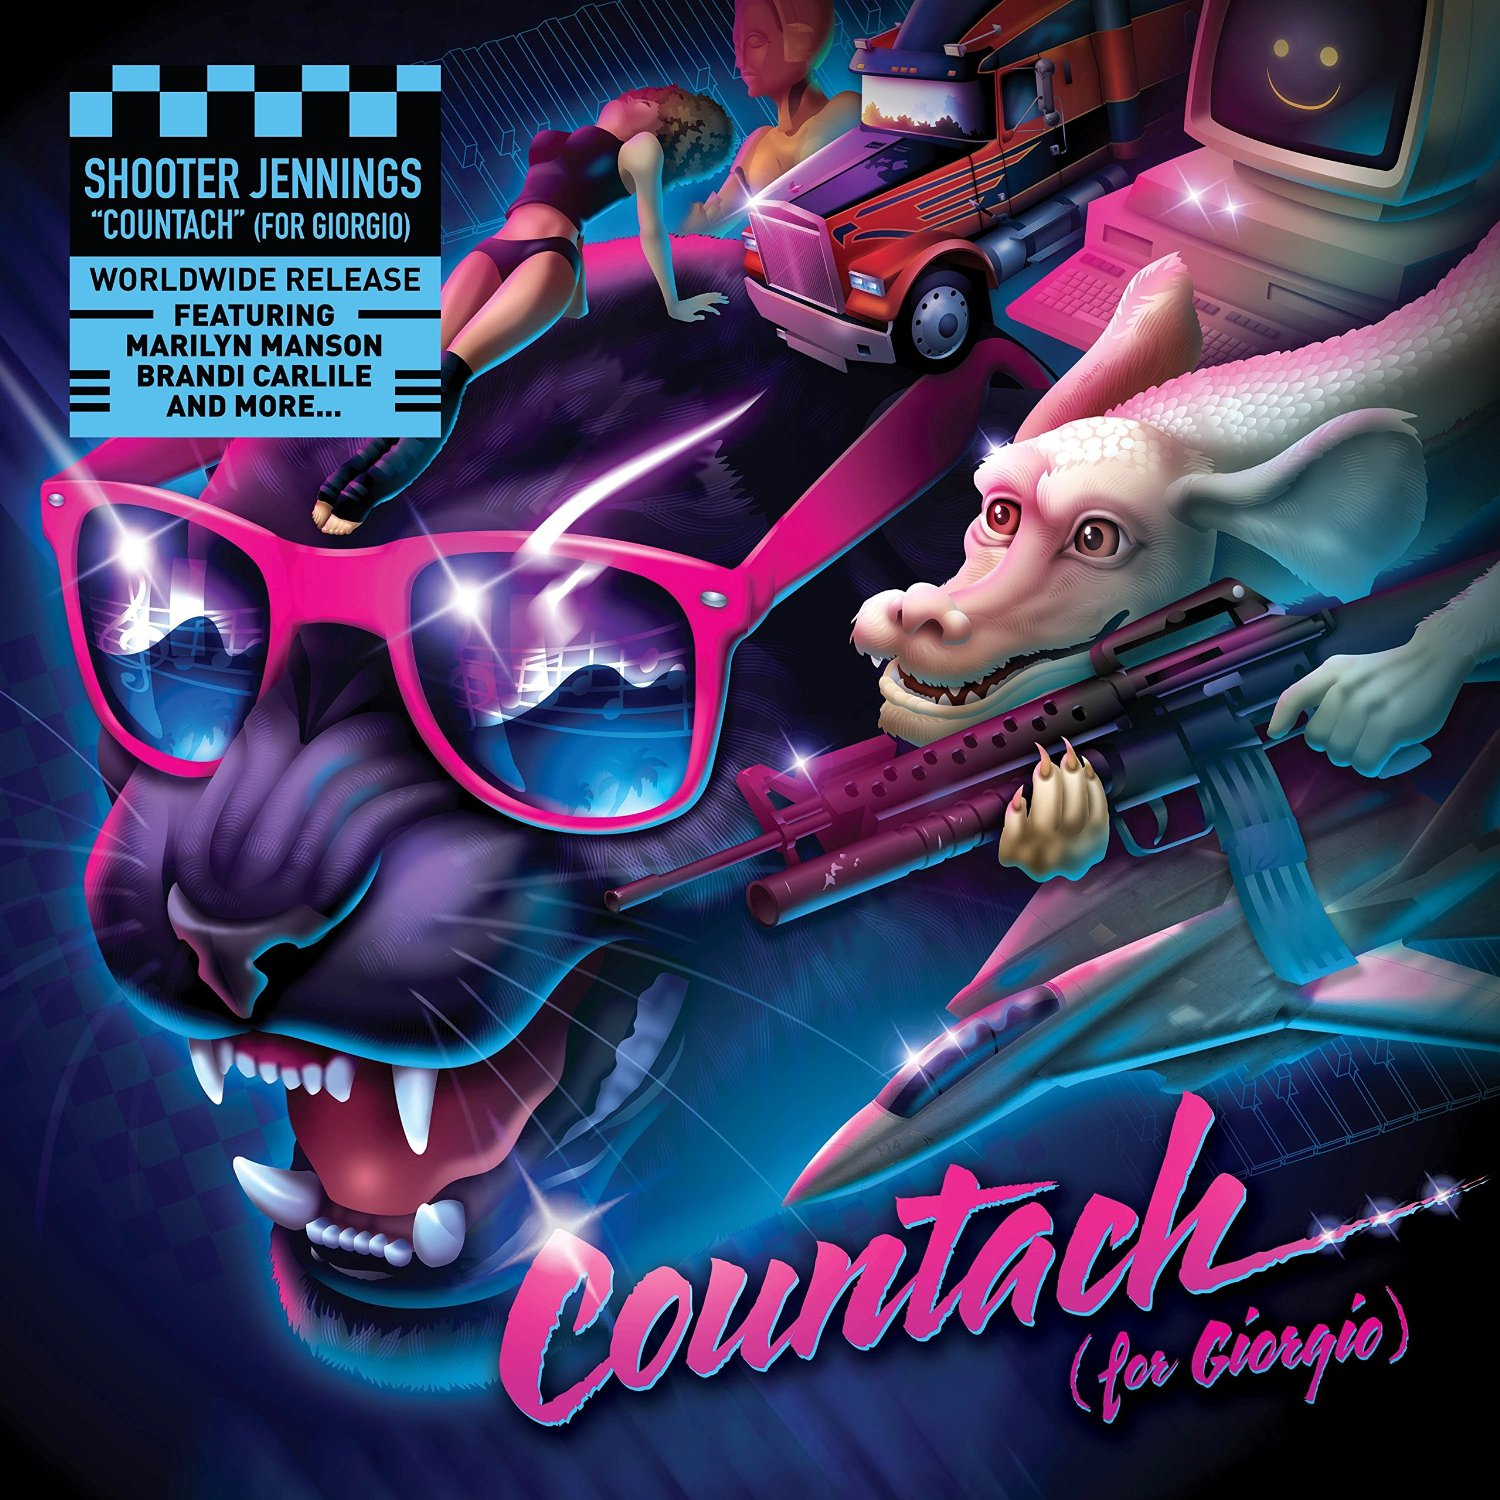 Shooter Jenkins : Countach (For Giorgio)